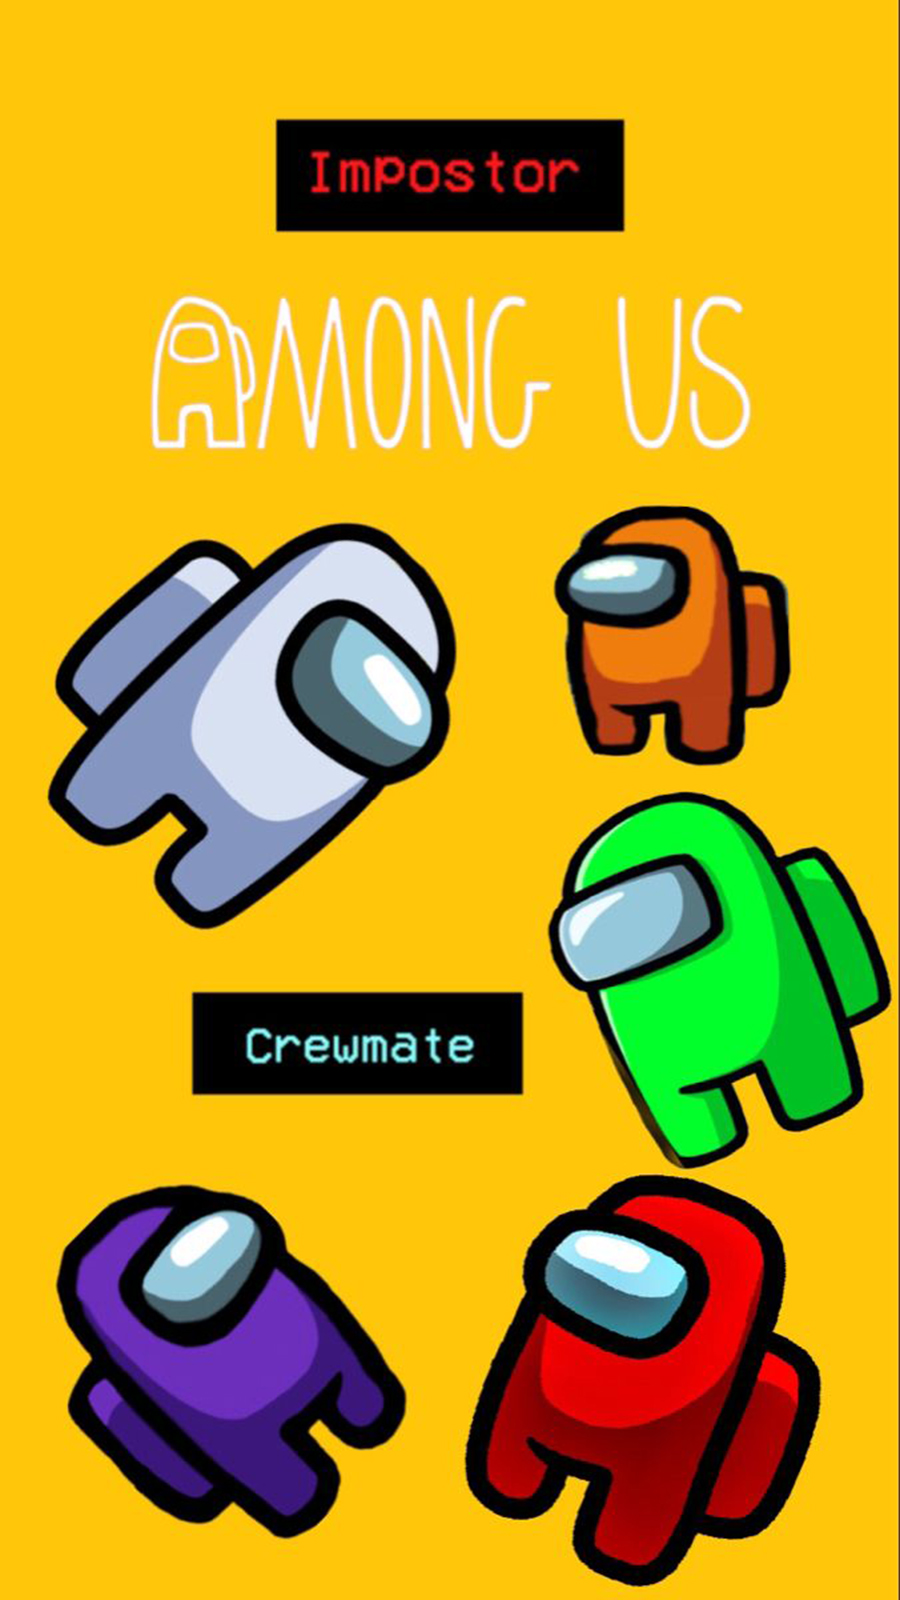 Best Among Us Wallpaper – Among Us Character Wallpapers Free Download